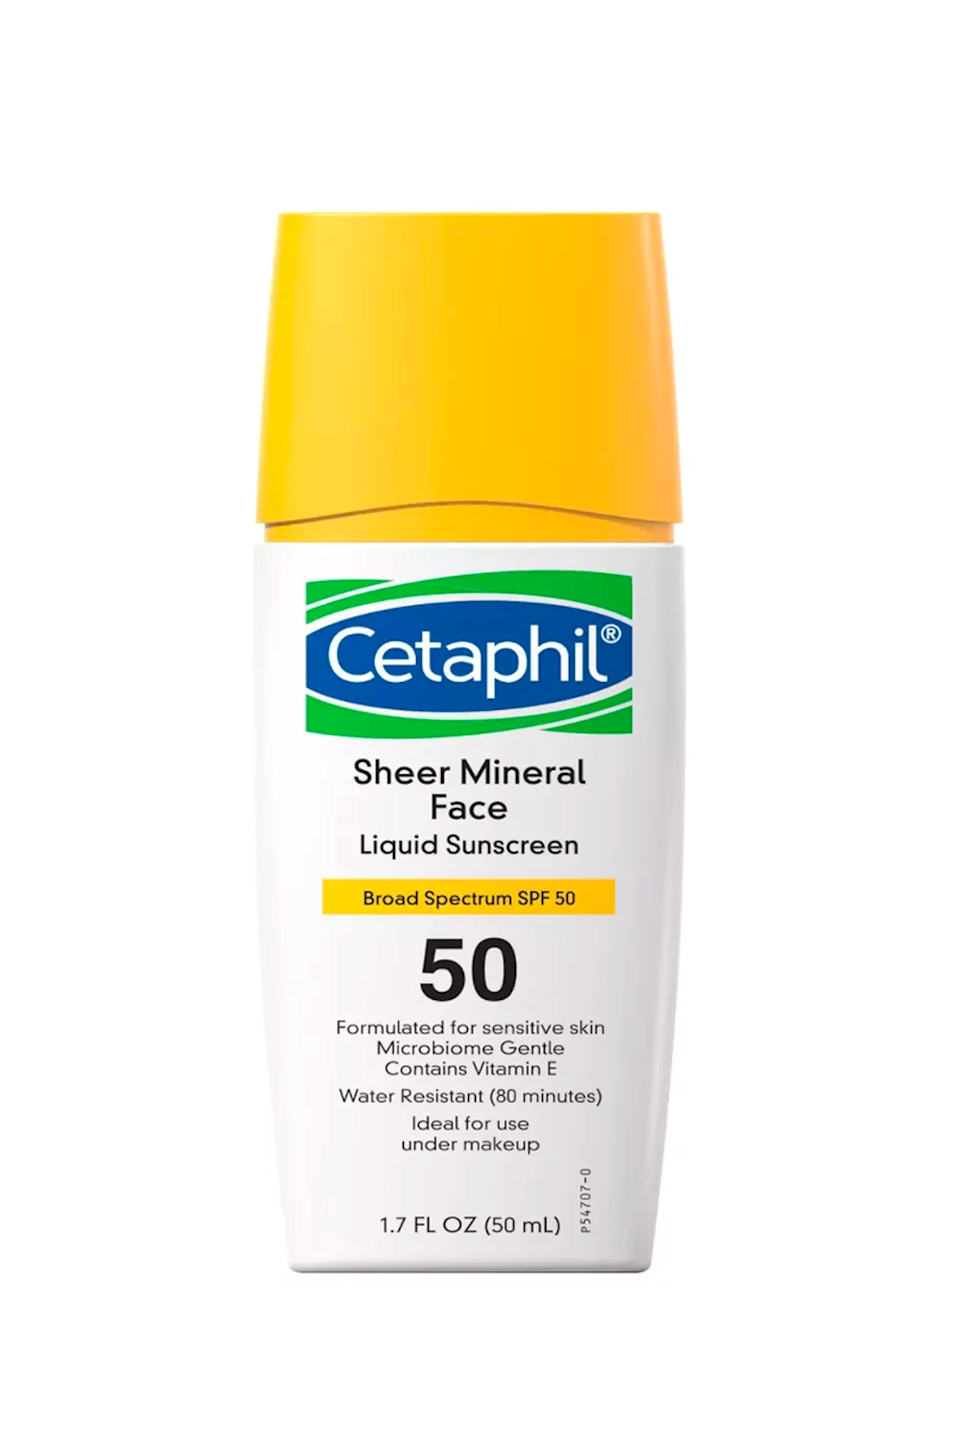 """<p><strong>Cetaphil</strong></p><p>amazon.com</p><p><strong>$14.49</strong></p><p><a href=""""https://www.amazon.com/dp/B08HJKQP7X?tag=syn-yahoo-20&ascsubtag=%5Bartid%7C10049.g.35993297%5Bsrc%7Cyahoo-us"""" rel=""""nofollow noopener"""" target=""""_blank"""" data-ylk=""""slk:Shop Now"""" class=""""link rapid-noclick-resp"""">Shop Now</a></p><p>Don't feel like spending a ton of cash on your pregnancy-safe sunscreen? This <a href=""""https://www.cosmopolitan.com/style-beauty/beauty/g35863427/best-drugstore-sunscreens/"""" rel=""""nofollow noopener"""" target=""""_blank"""" data-ylk=""""slk:drugstore"""" class=""""link rapid-noclick-resp"""">drugstore</a> option is just as effective as the pricier ones, thanks to its mineral formula that's even <strong>gentle enough for sensitive skin types</strong>. P.S., The smooth, non-greasy texture means this SPF is great for applying under makeup. </p>"""